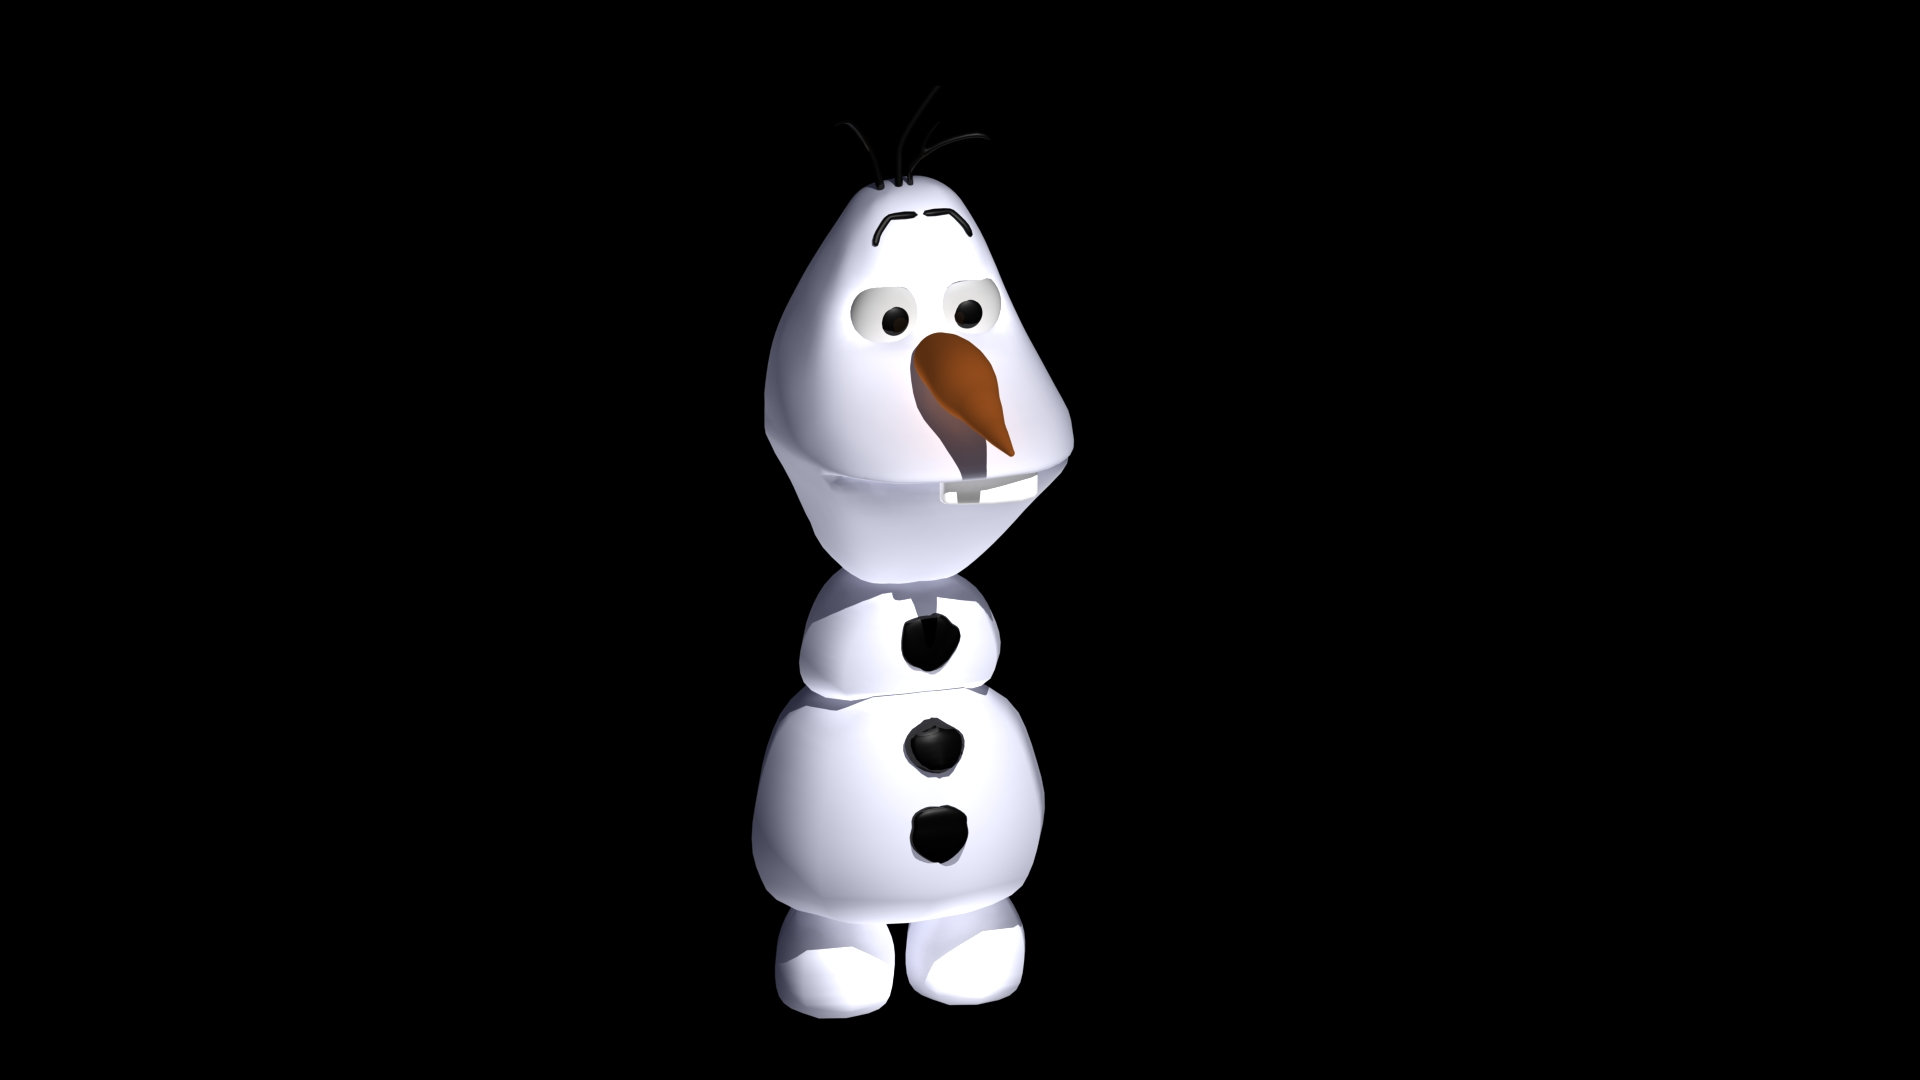 3D Modelling: Olaf